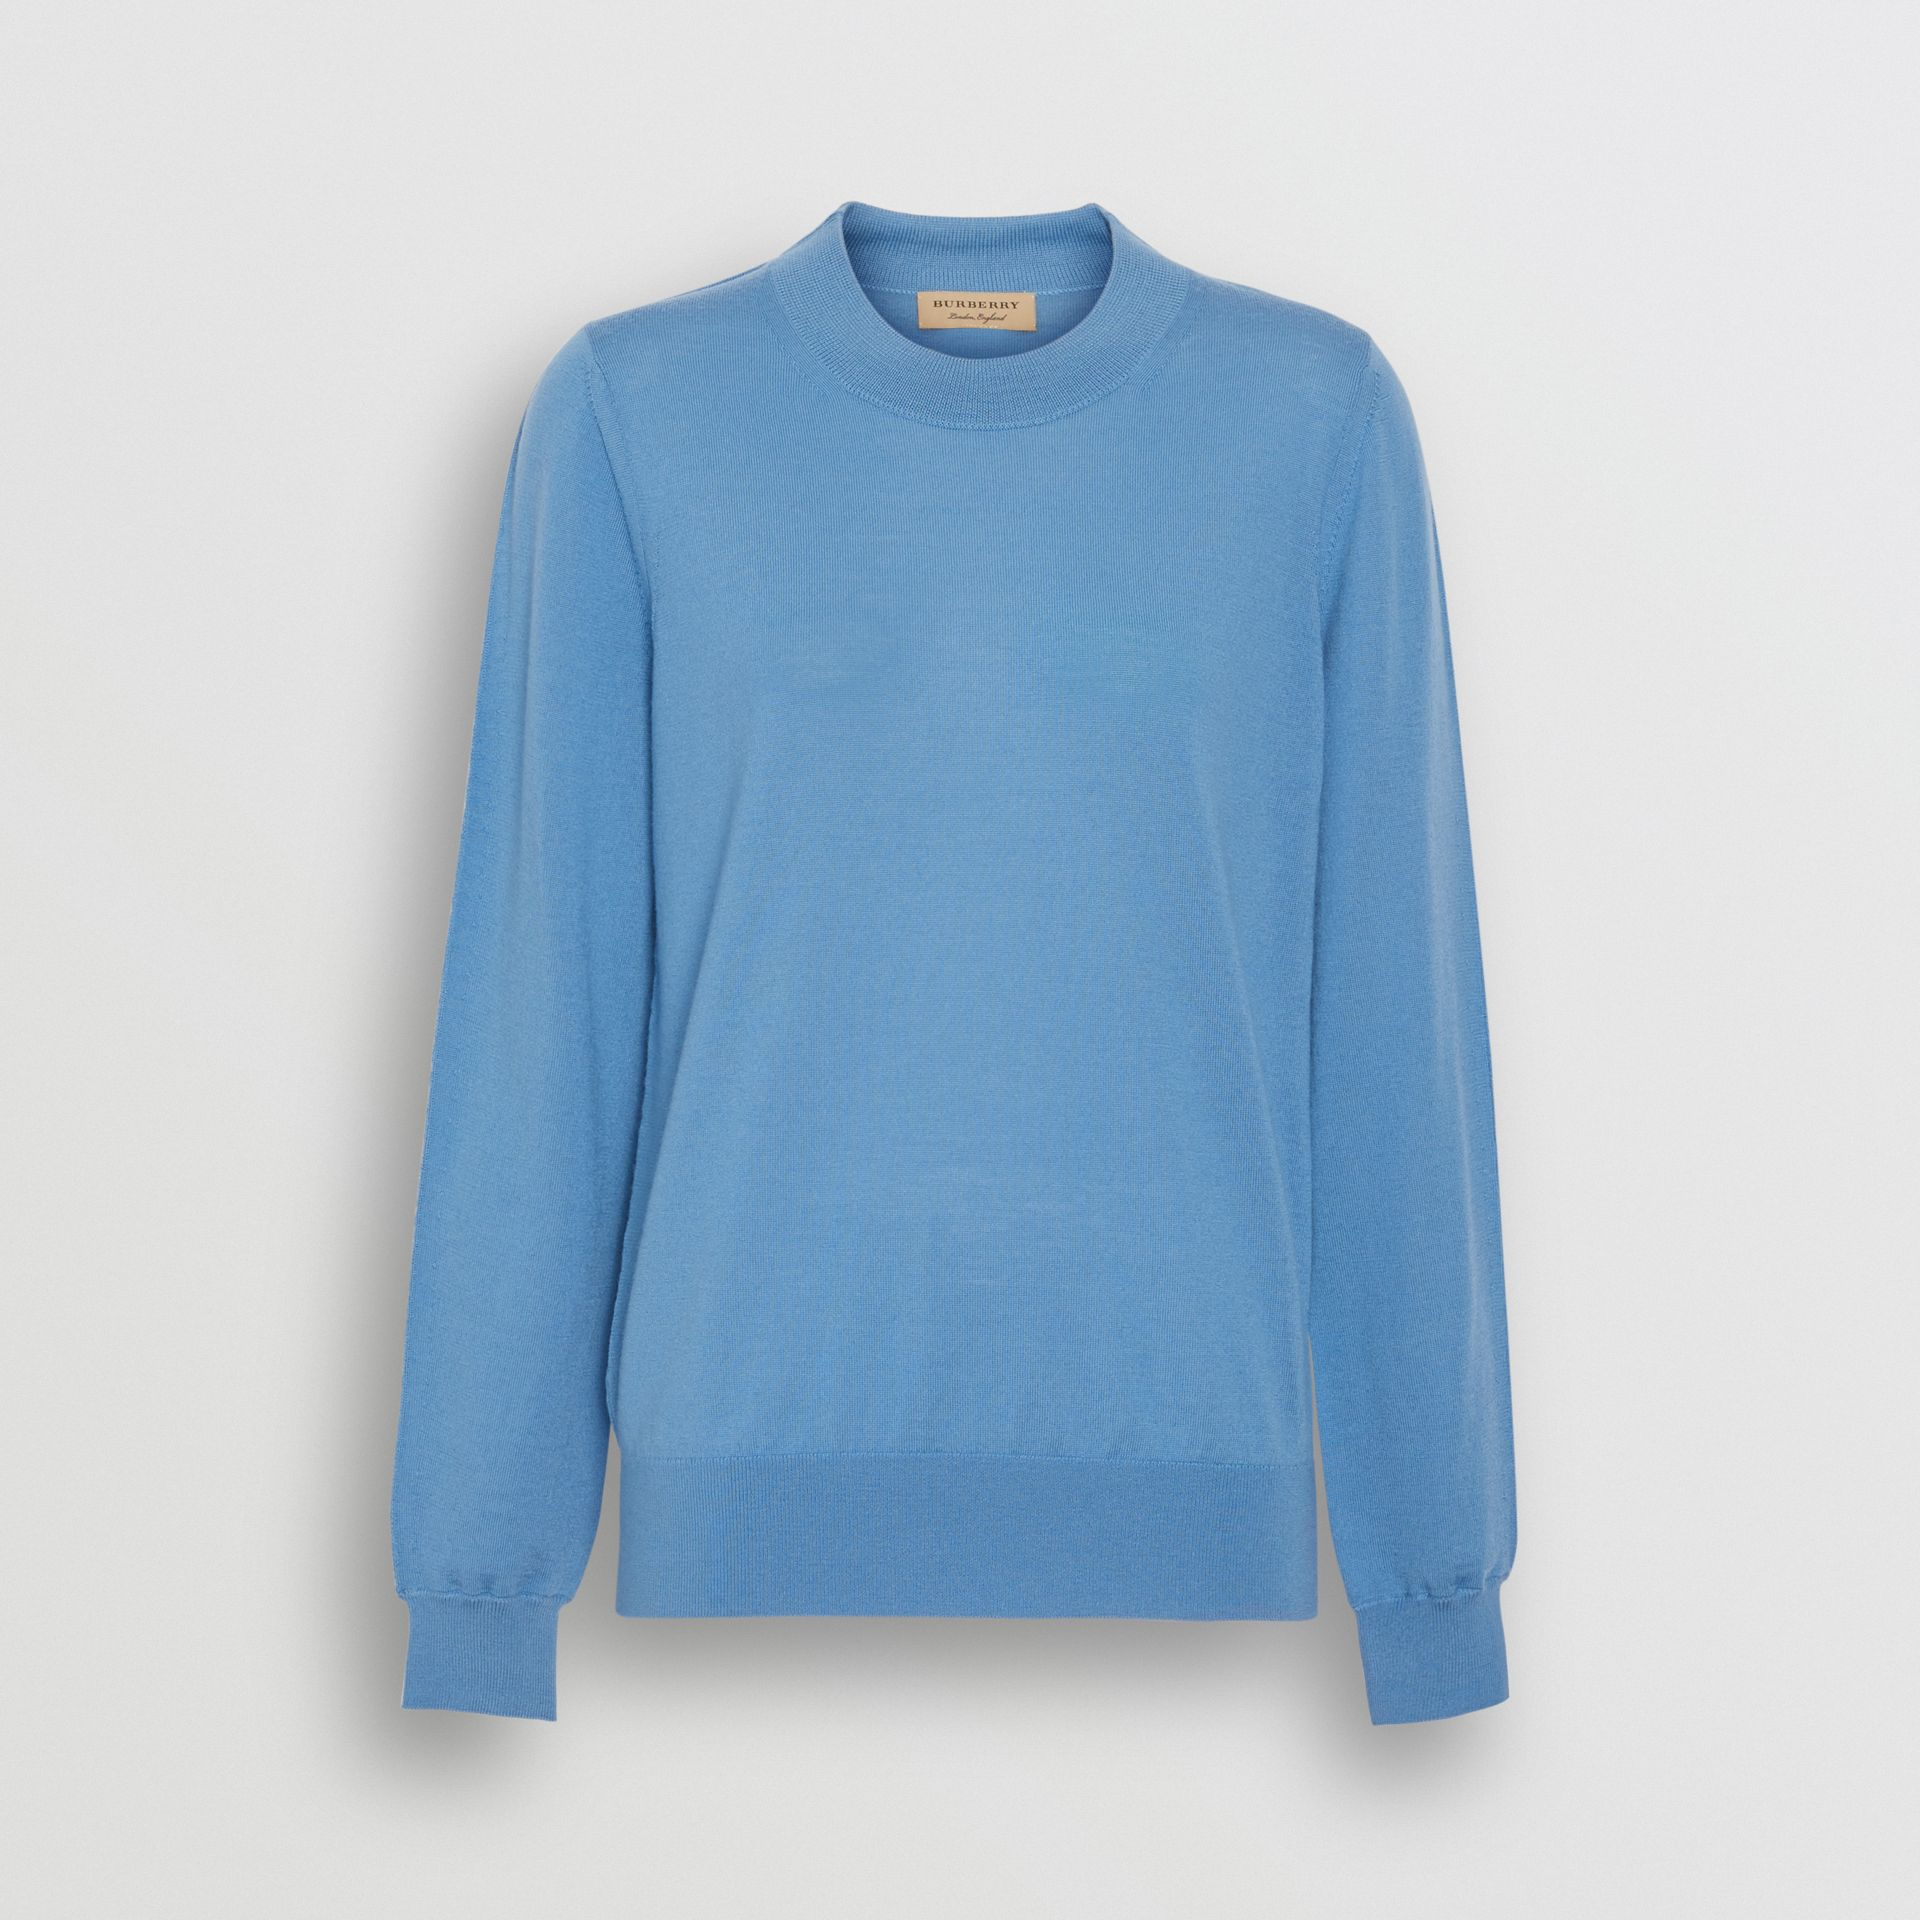 Logo Detail Merino Wool Sweater in Pebble Blue - Women | Burberry - gallery image 3